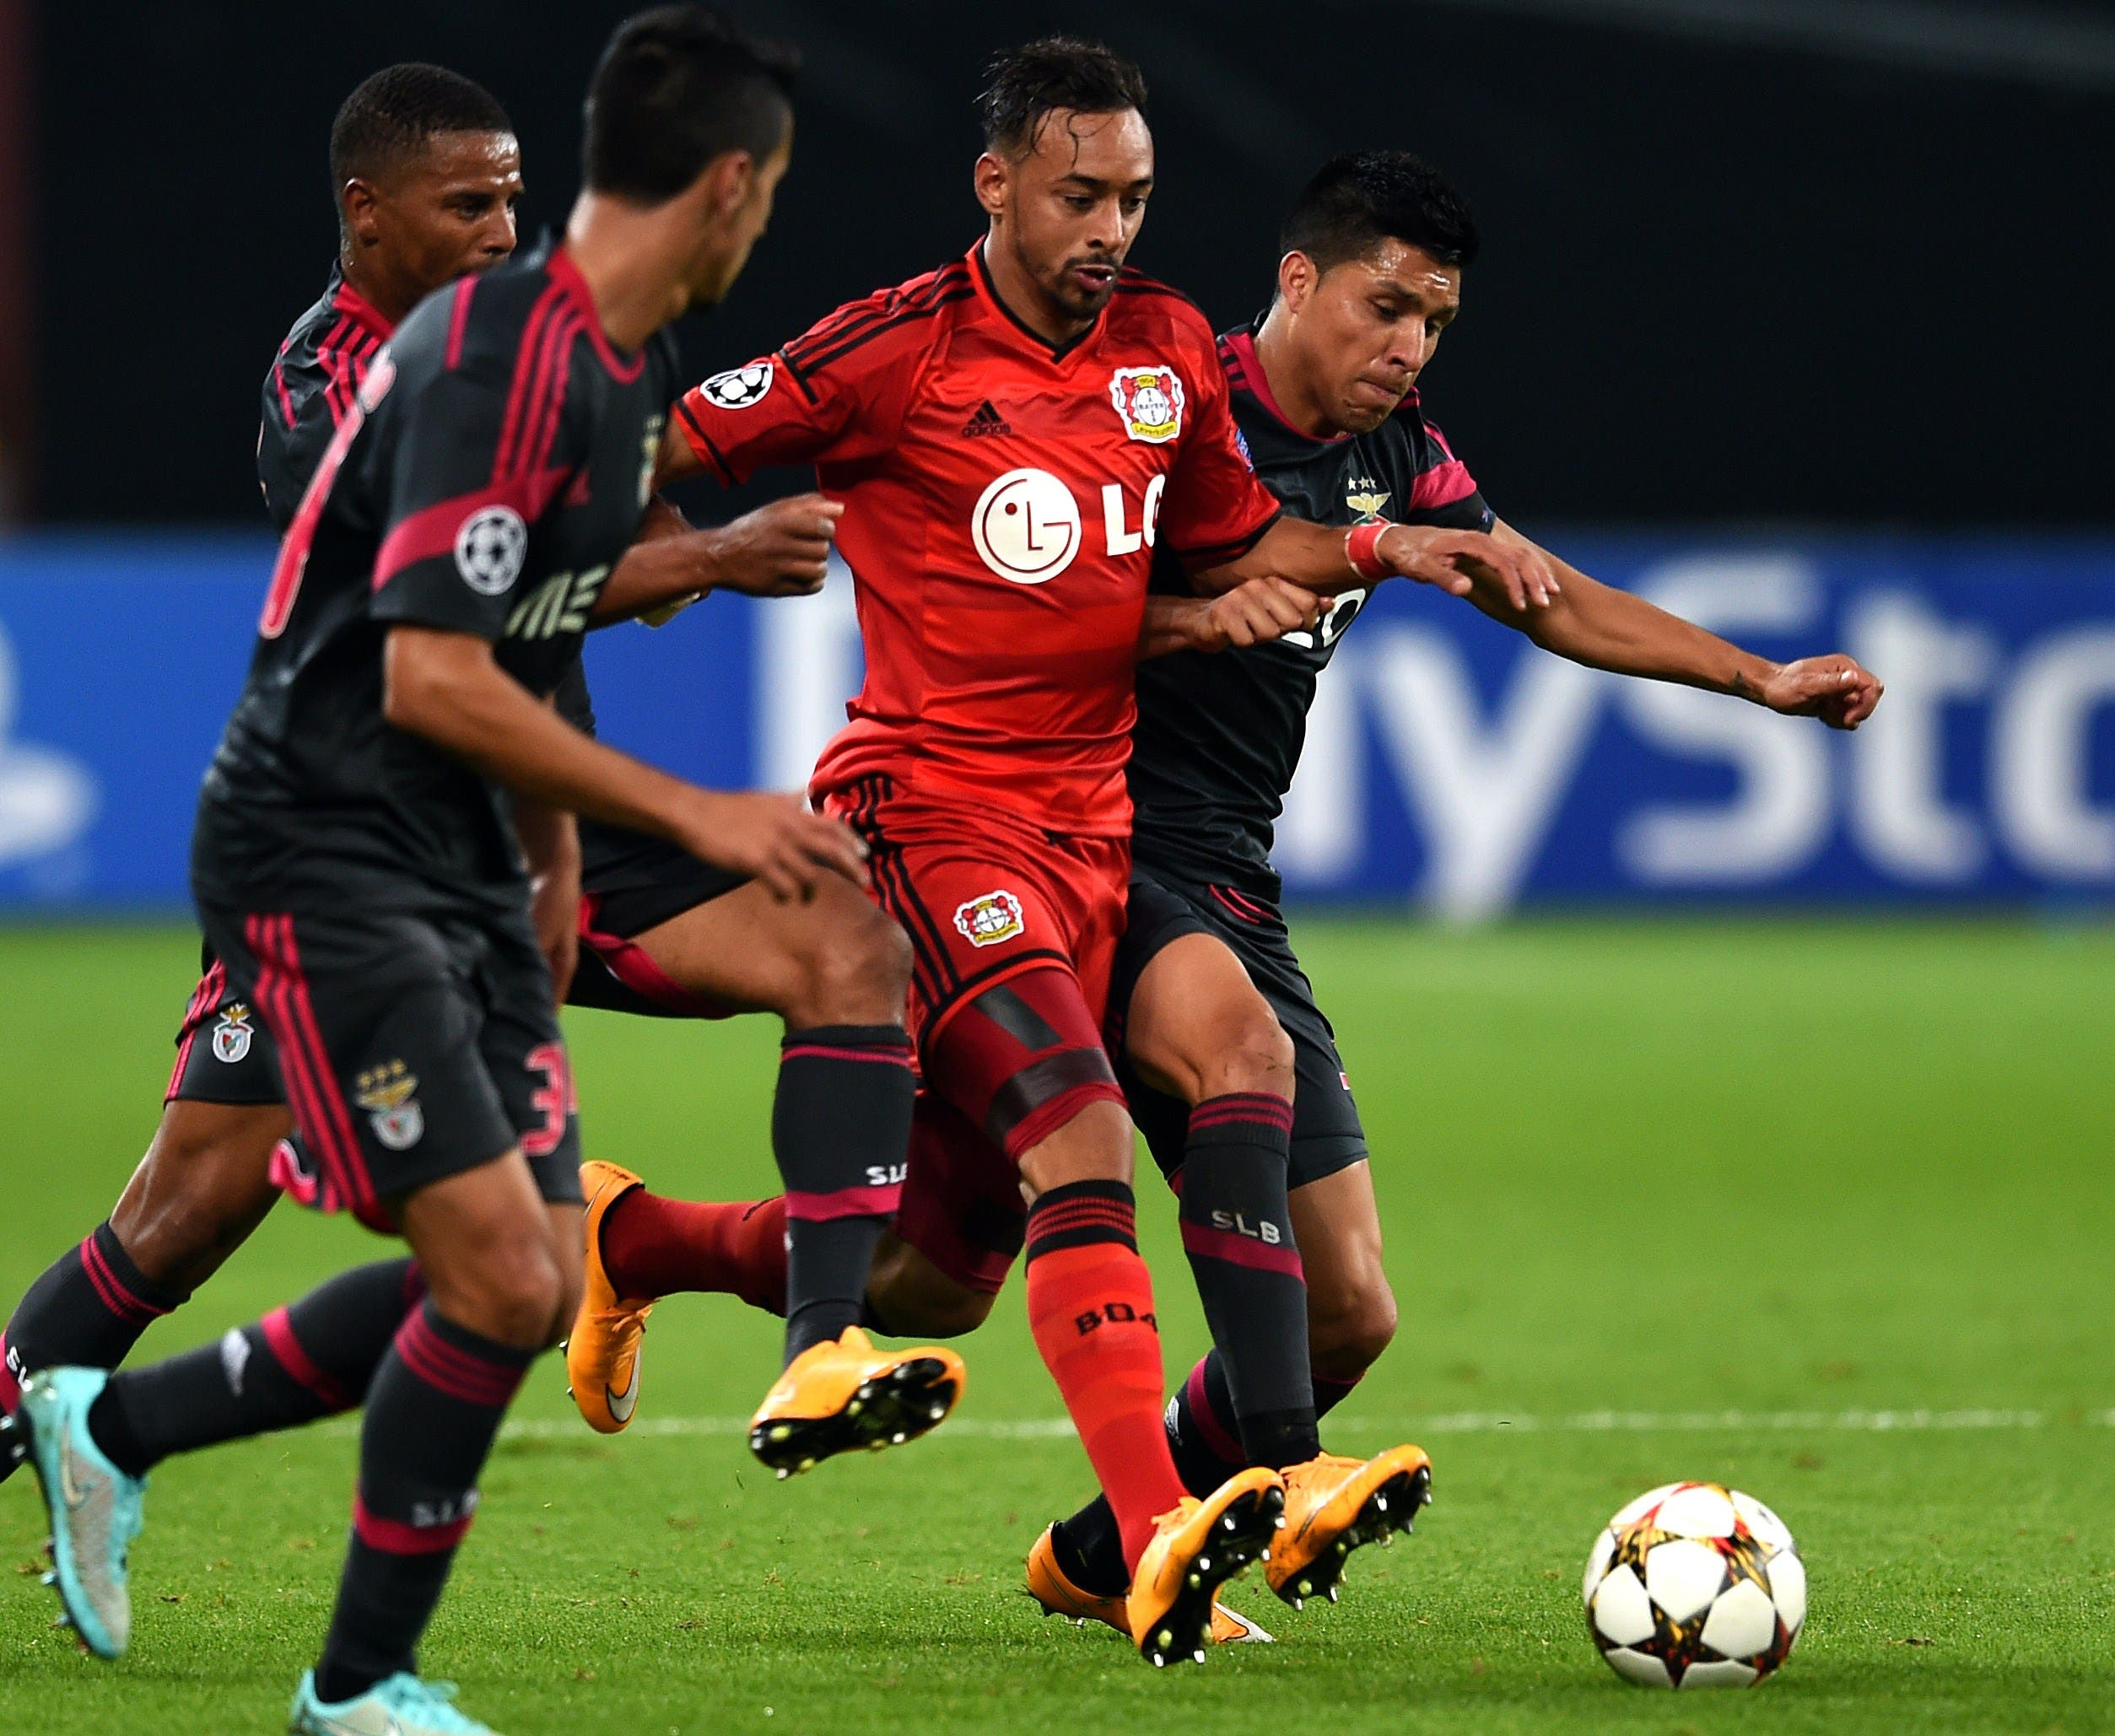 Leverkusen's forward Karim Bellarabi and Benfica's Argentinian midfielder Enzo Perez vie for the ball. (AFP)